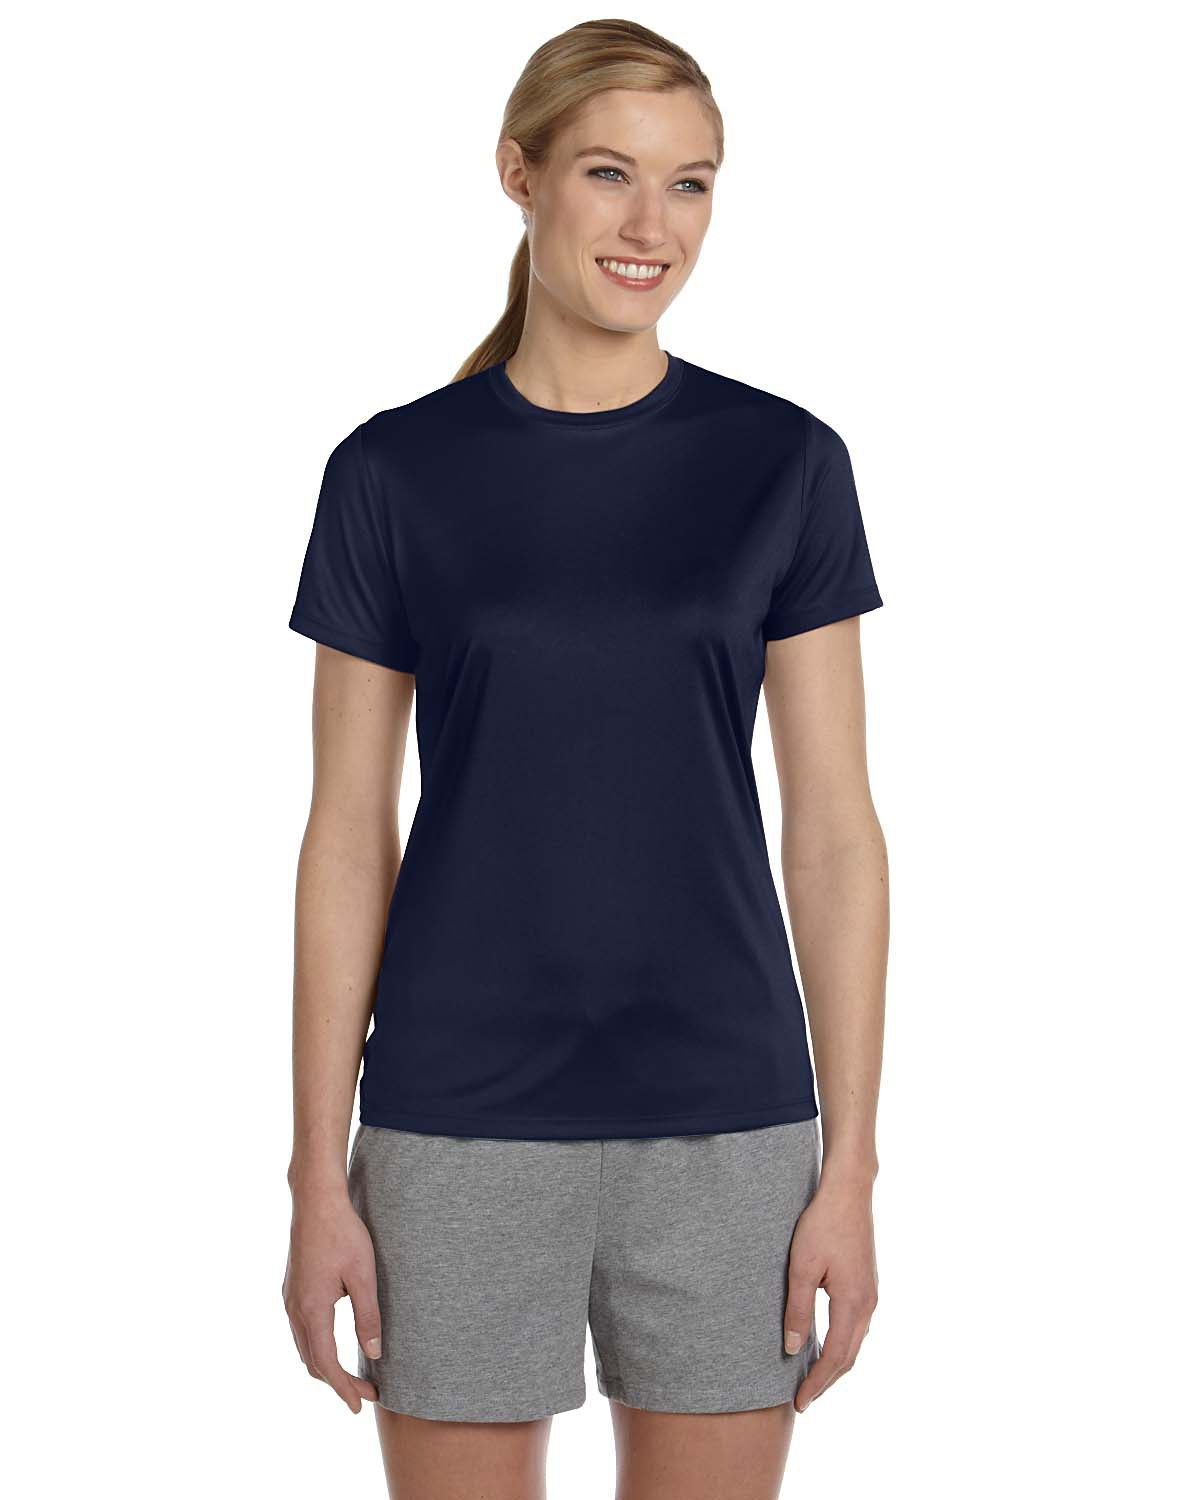 Hanes 4830 - Ladies' Cool DRI Performance T-Shirt